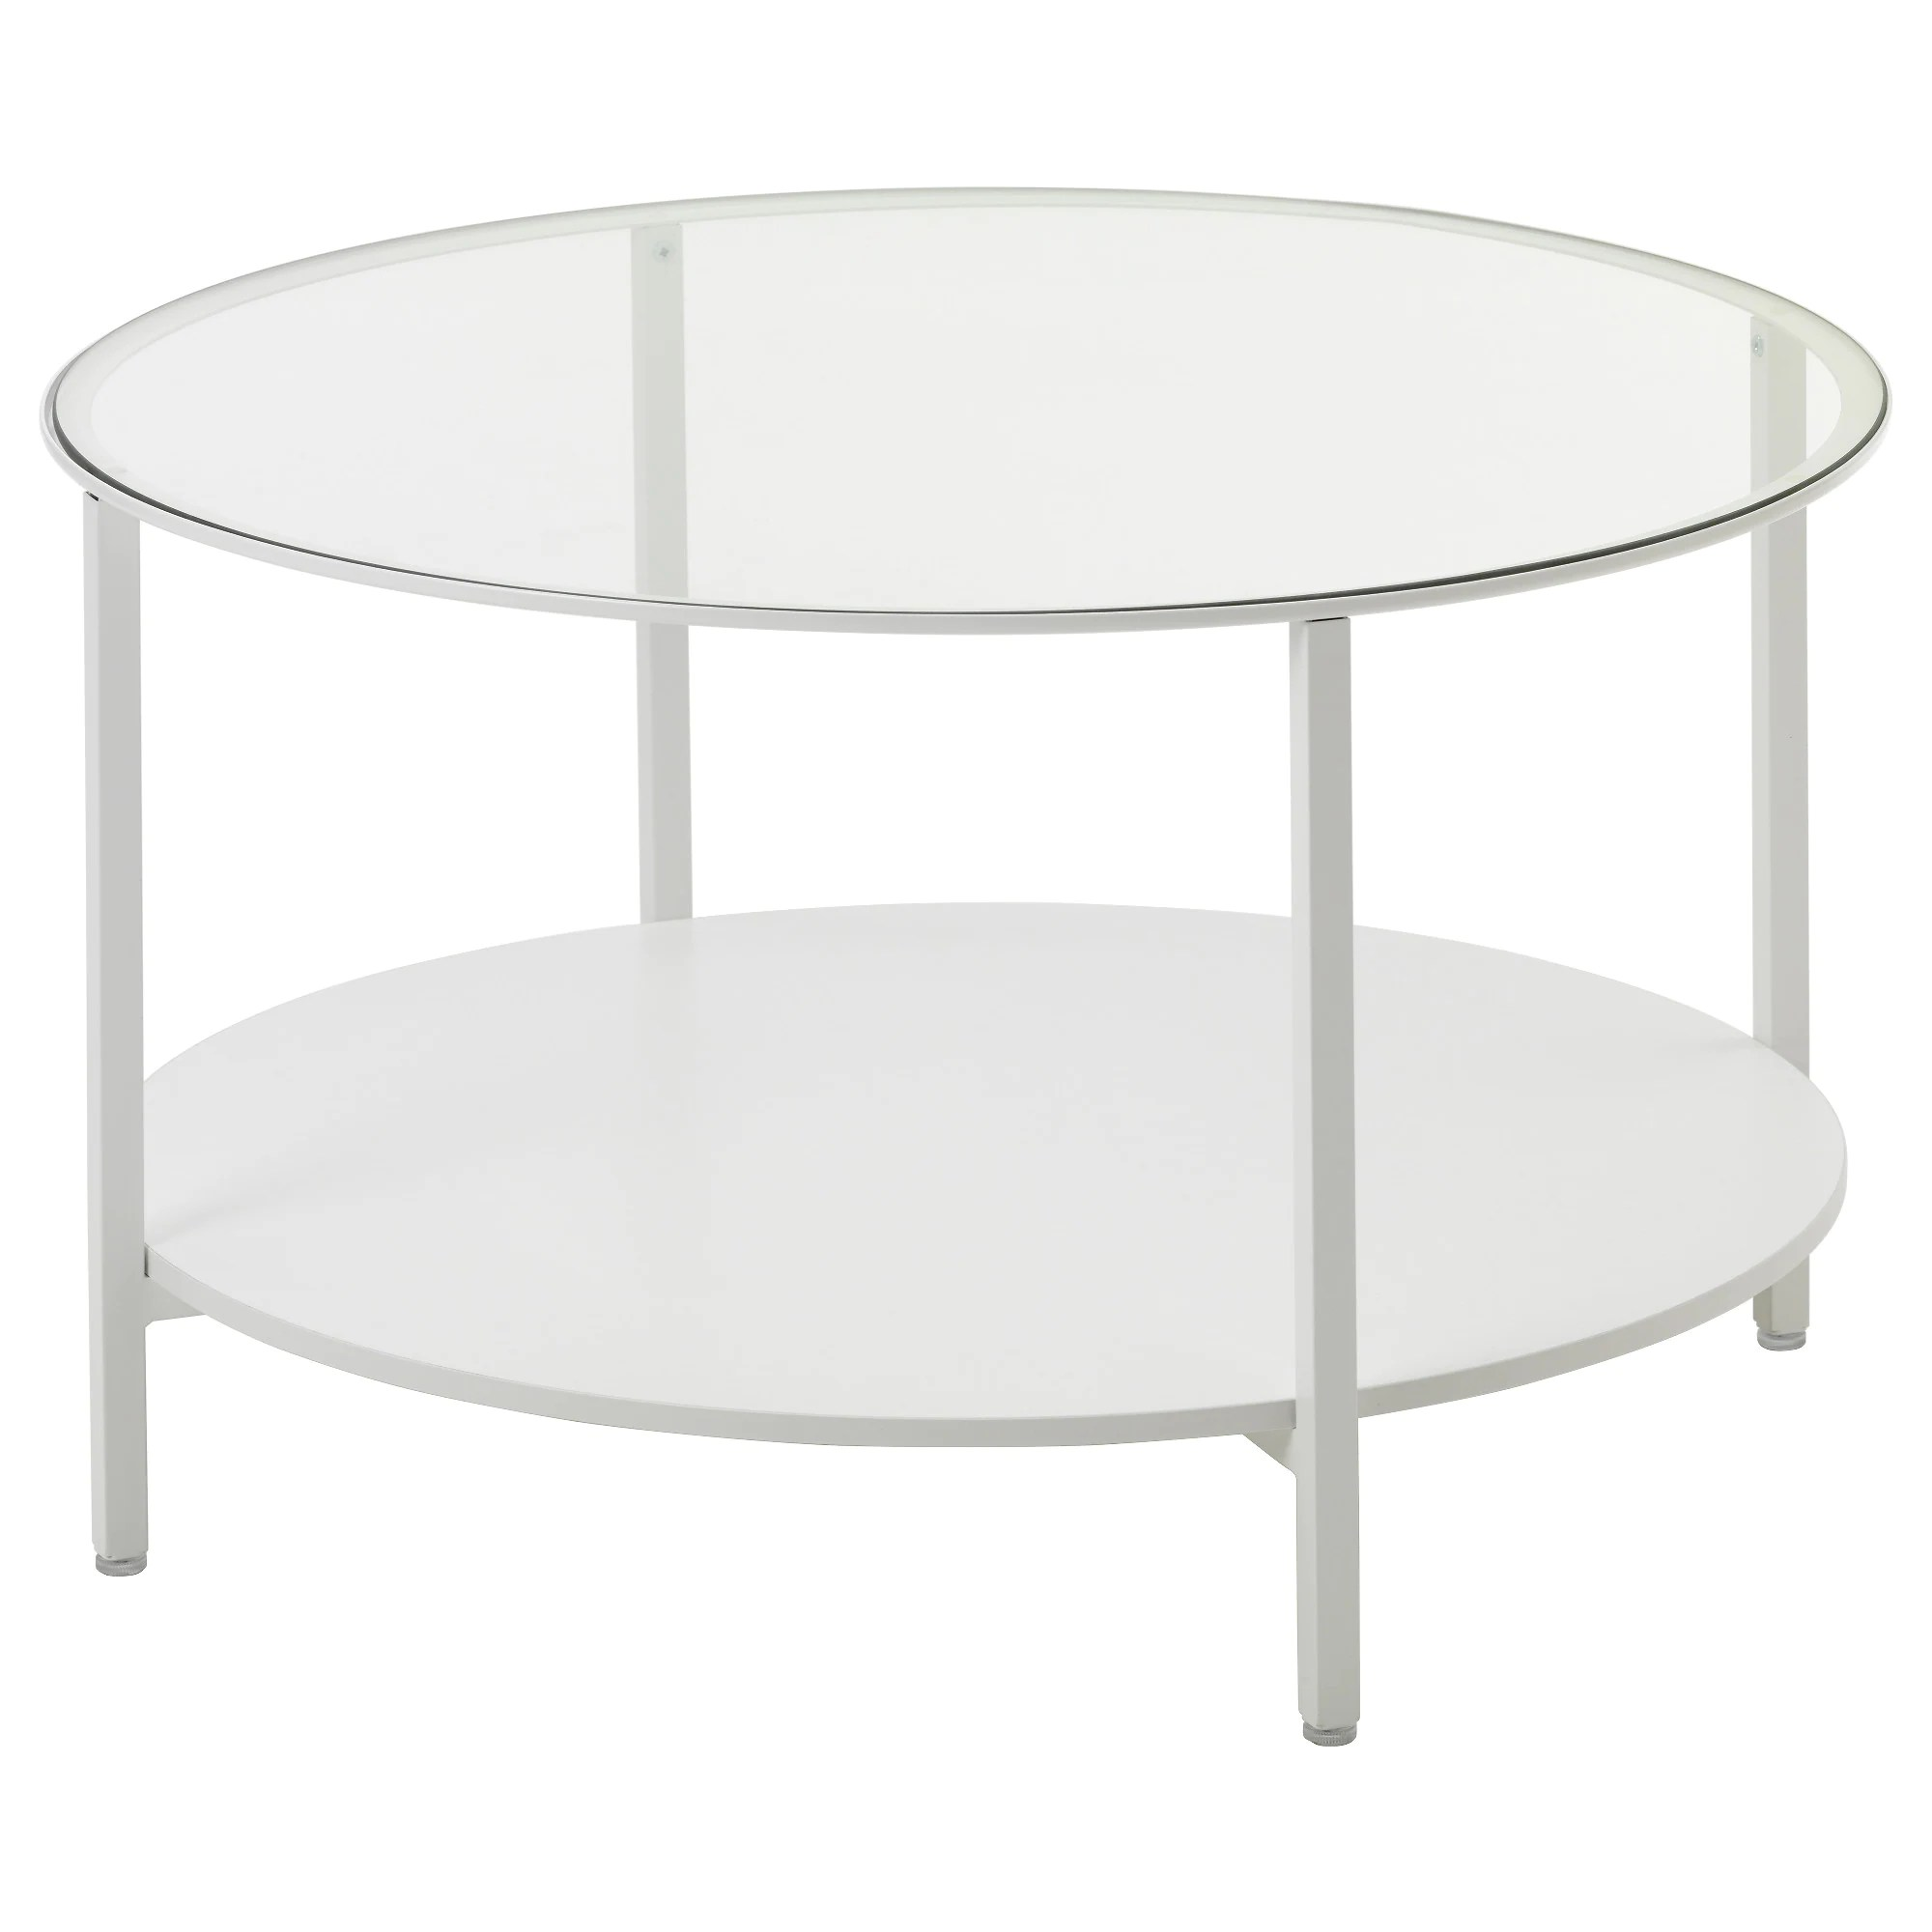 Table Basse Ikea Ronde VittsjÖ Table Basse Brun Noir Verre